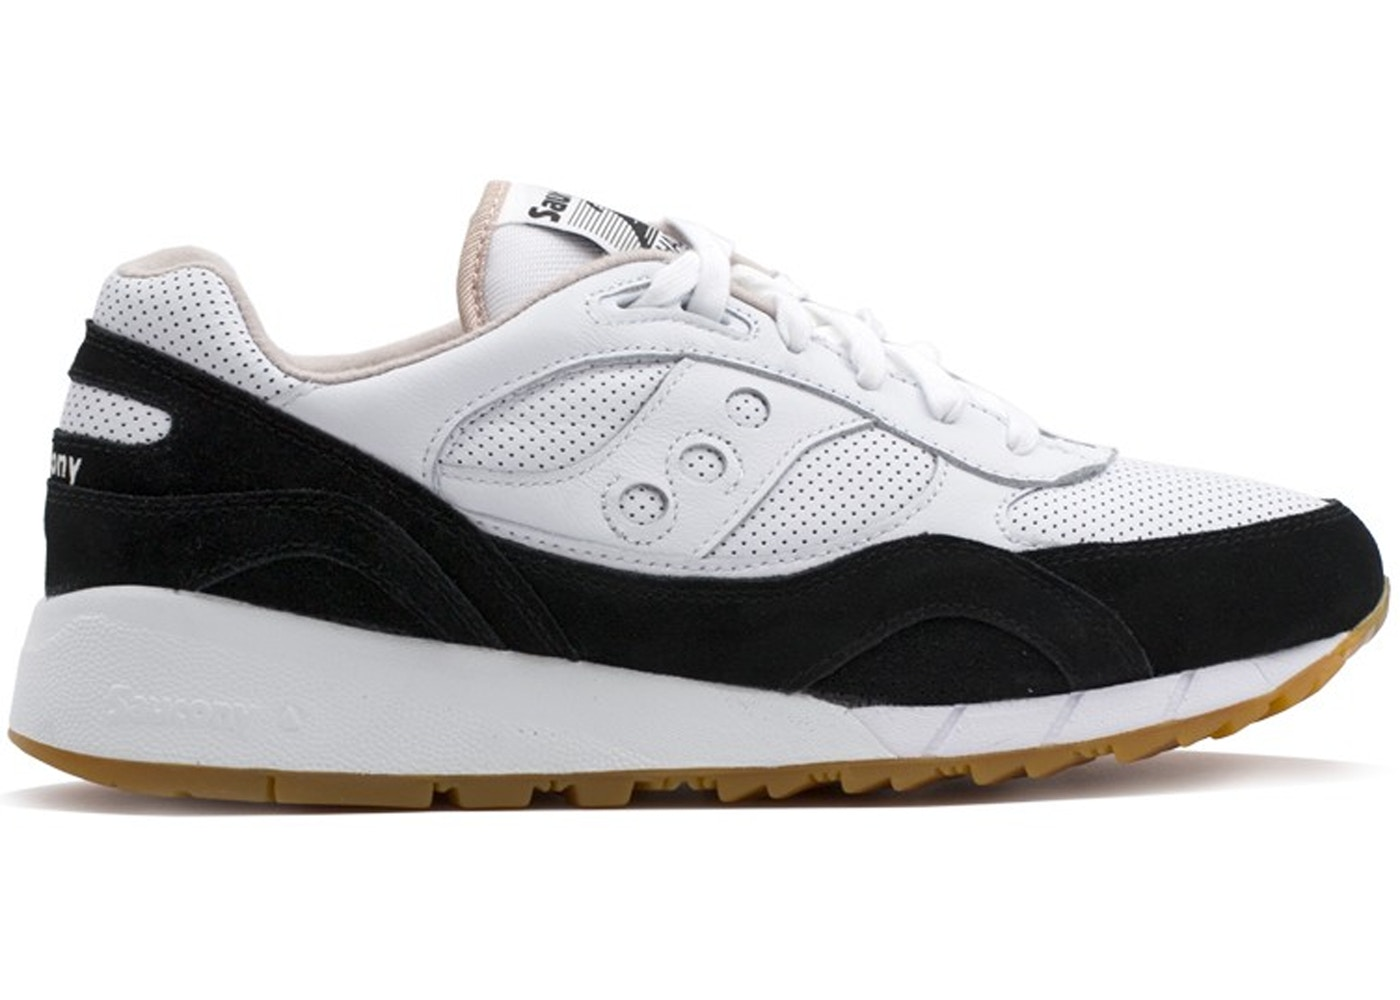 f2d3fdeb Saucony Size 15 Shoes - Release Date